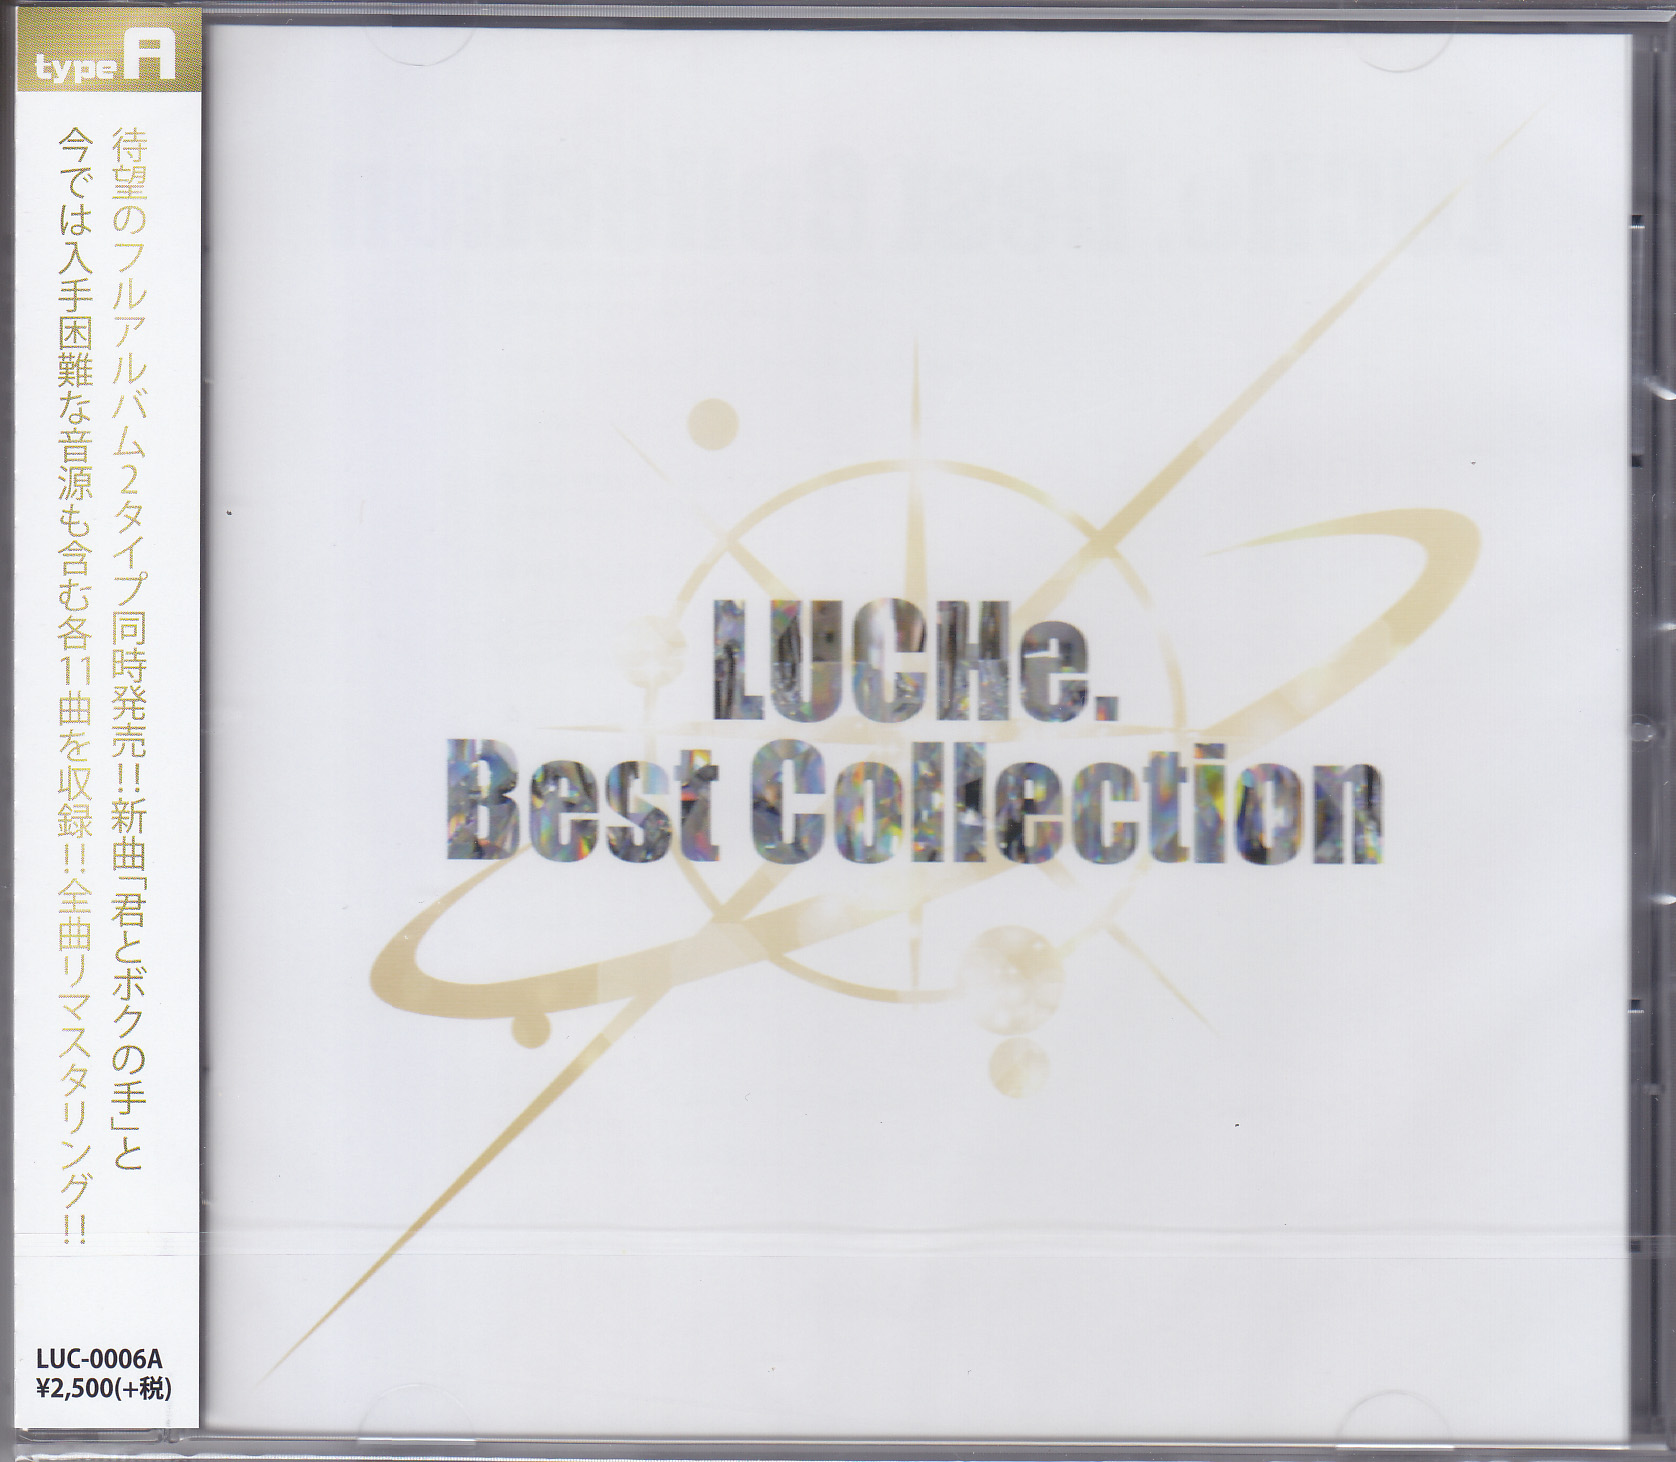 ルーチェ の CD LUCHe. Best Collection【Atype】